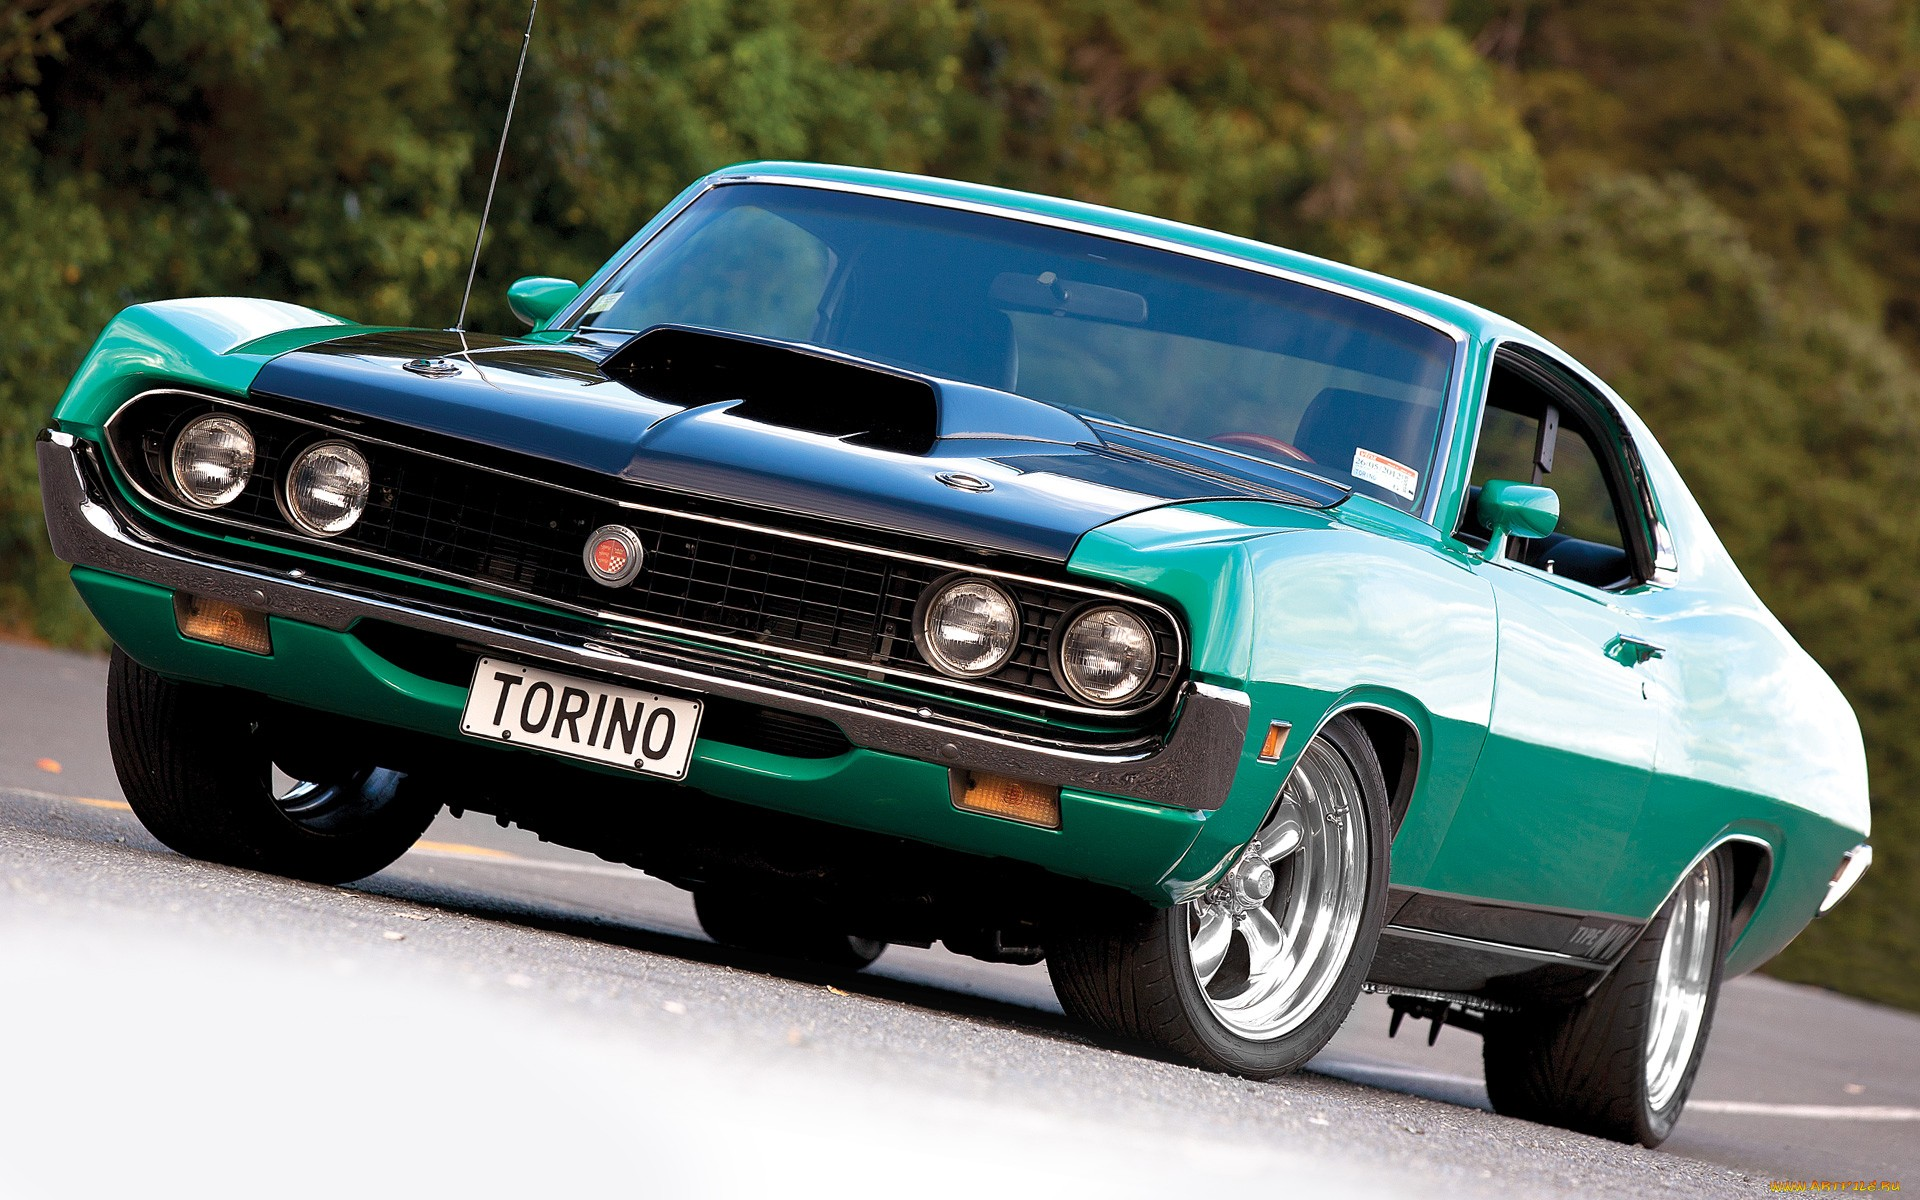 1920x1200 - Ford Torino Wallpapers 8